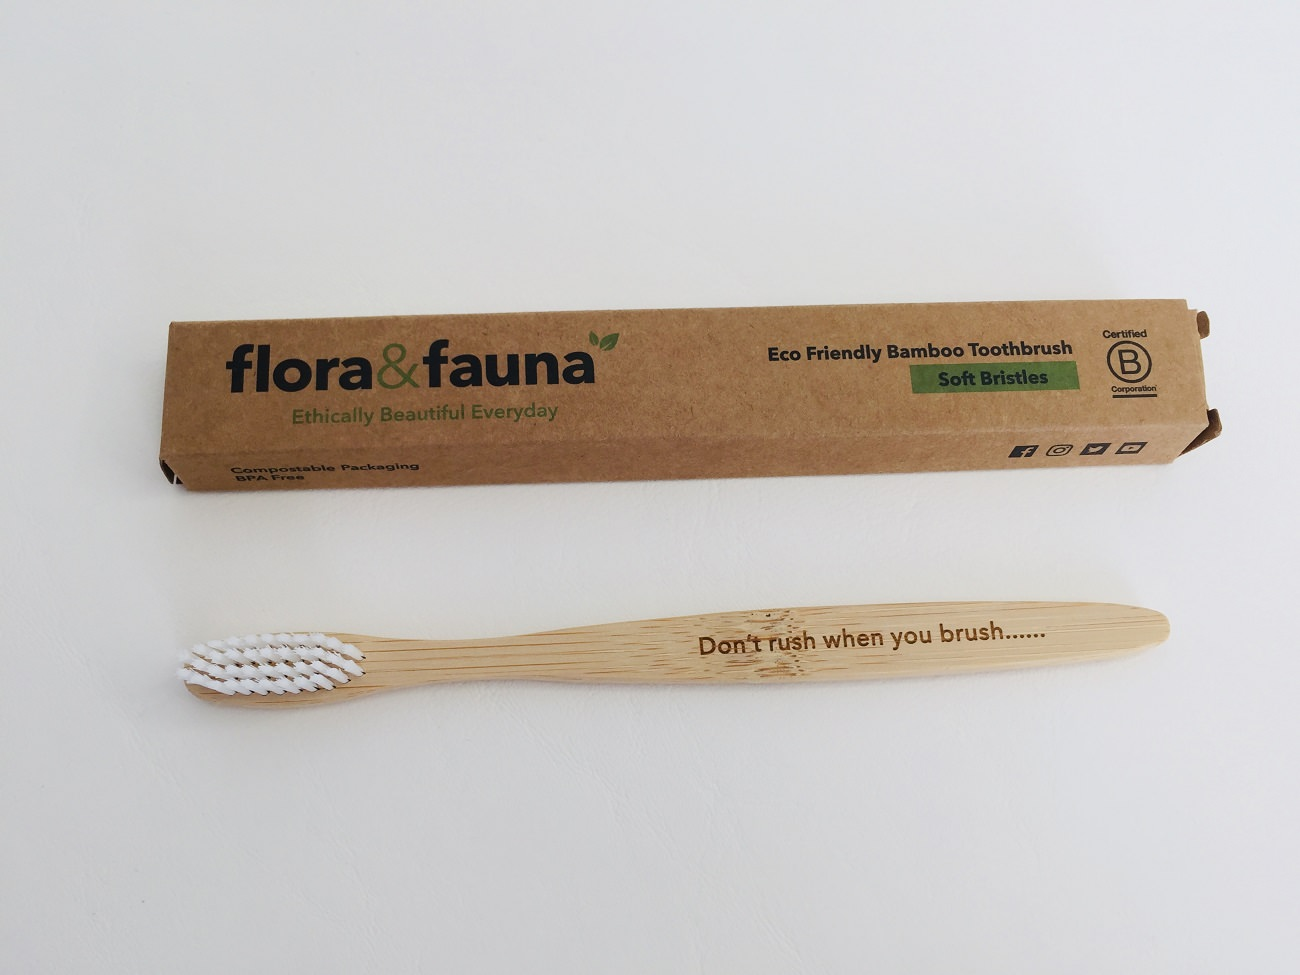 The Flora & Fauna Bamboo Toothbrush out of its packaging